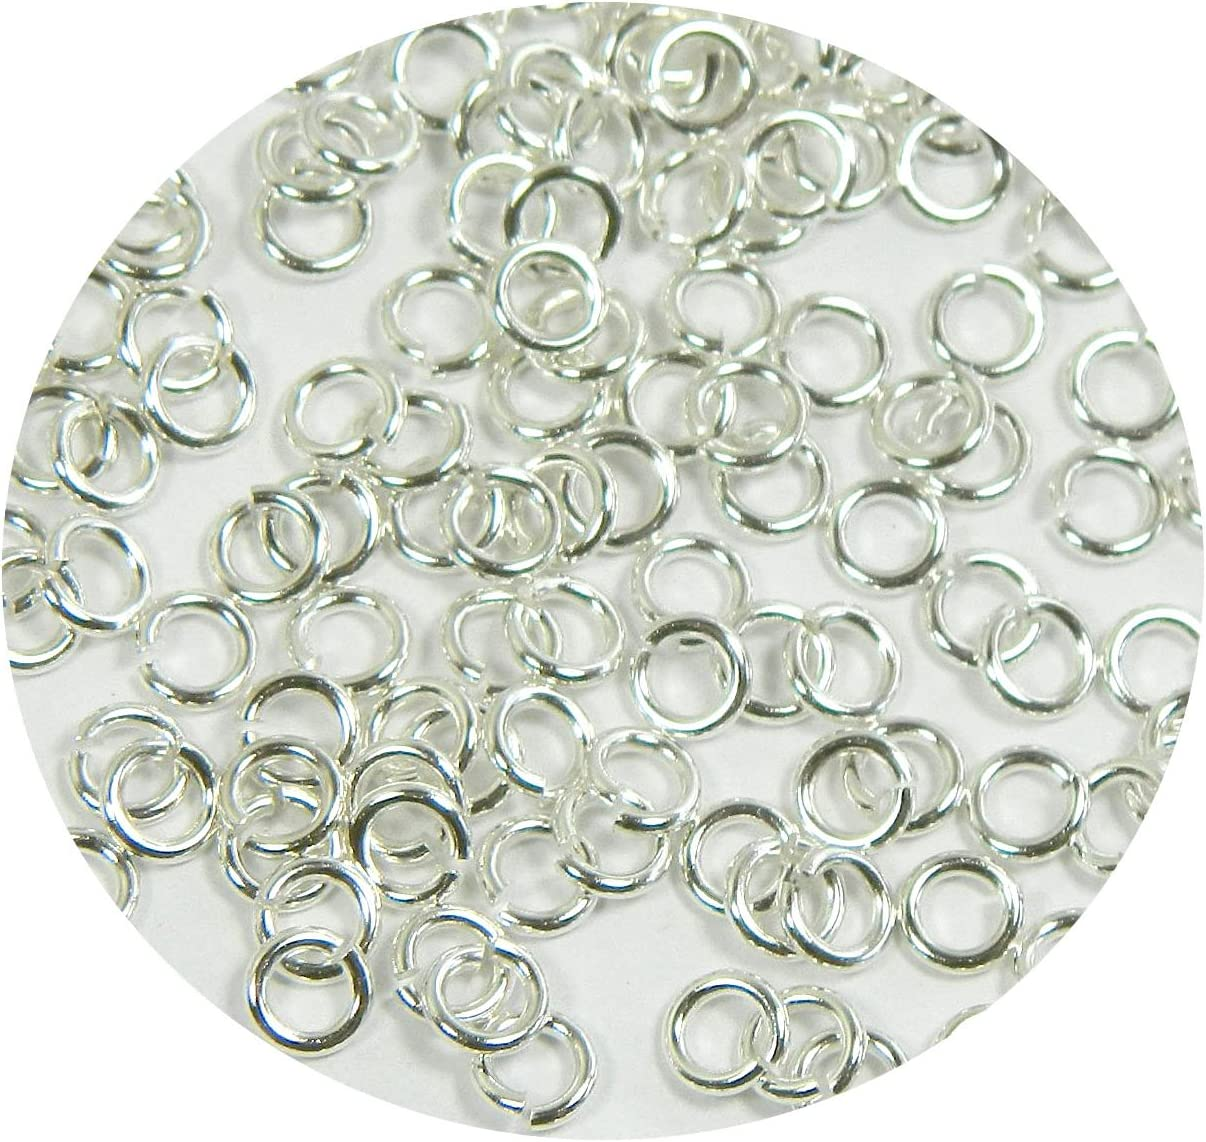 Rockin Beads Brand Jewelry Connectors Pkg of 400 9mm Round 16 Gauge 400 Jump Rings Silver-plated Brass